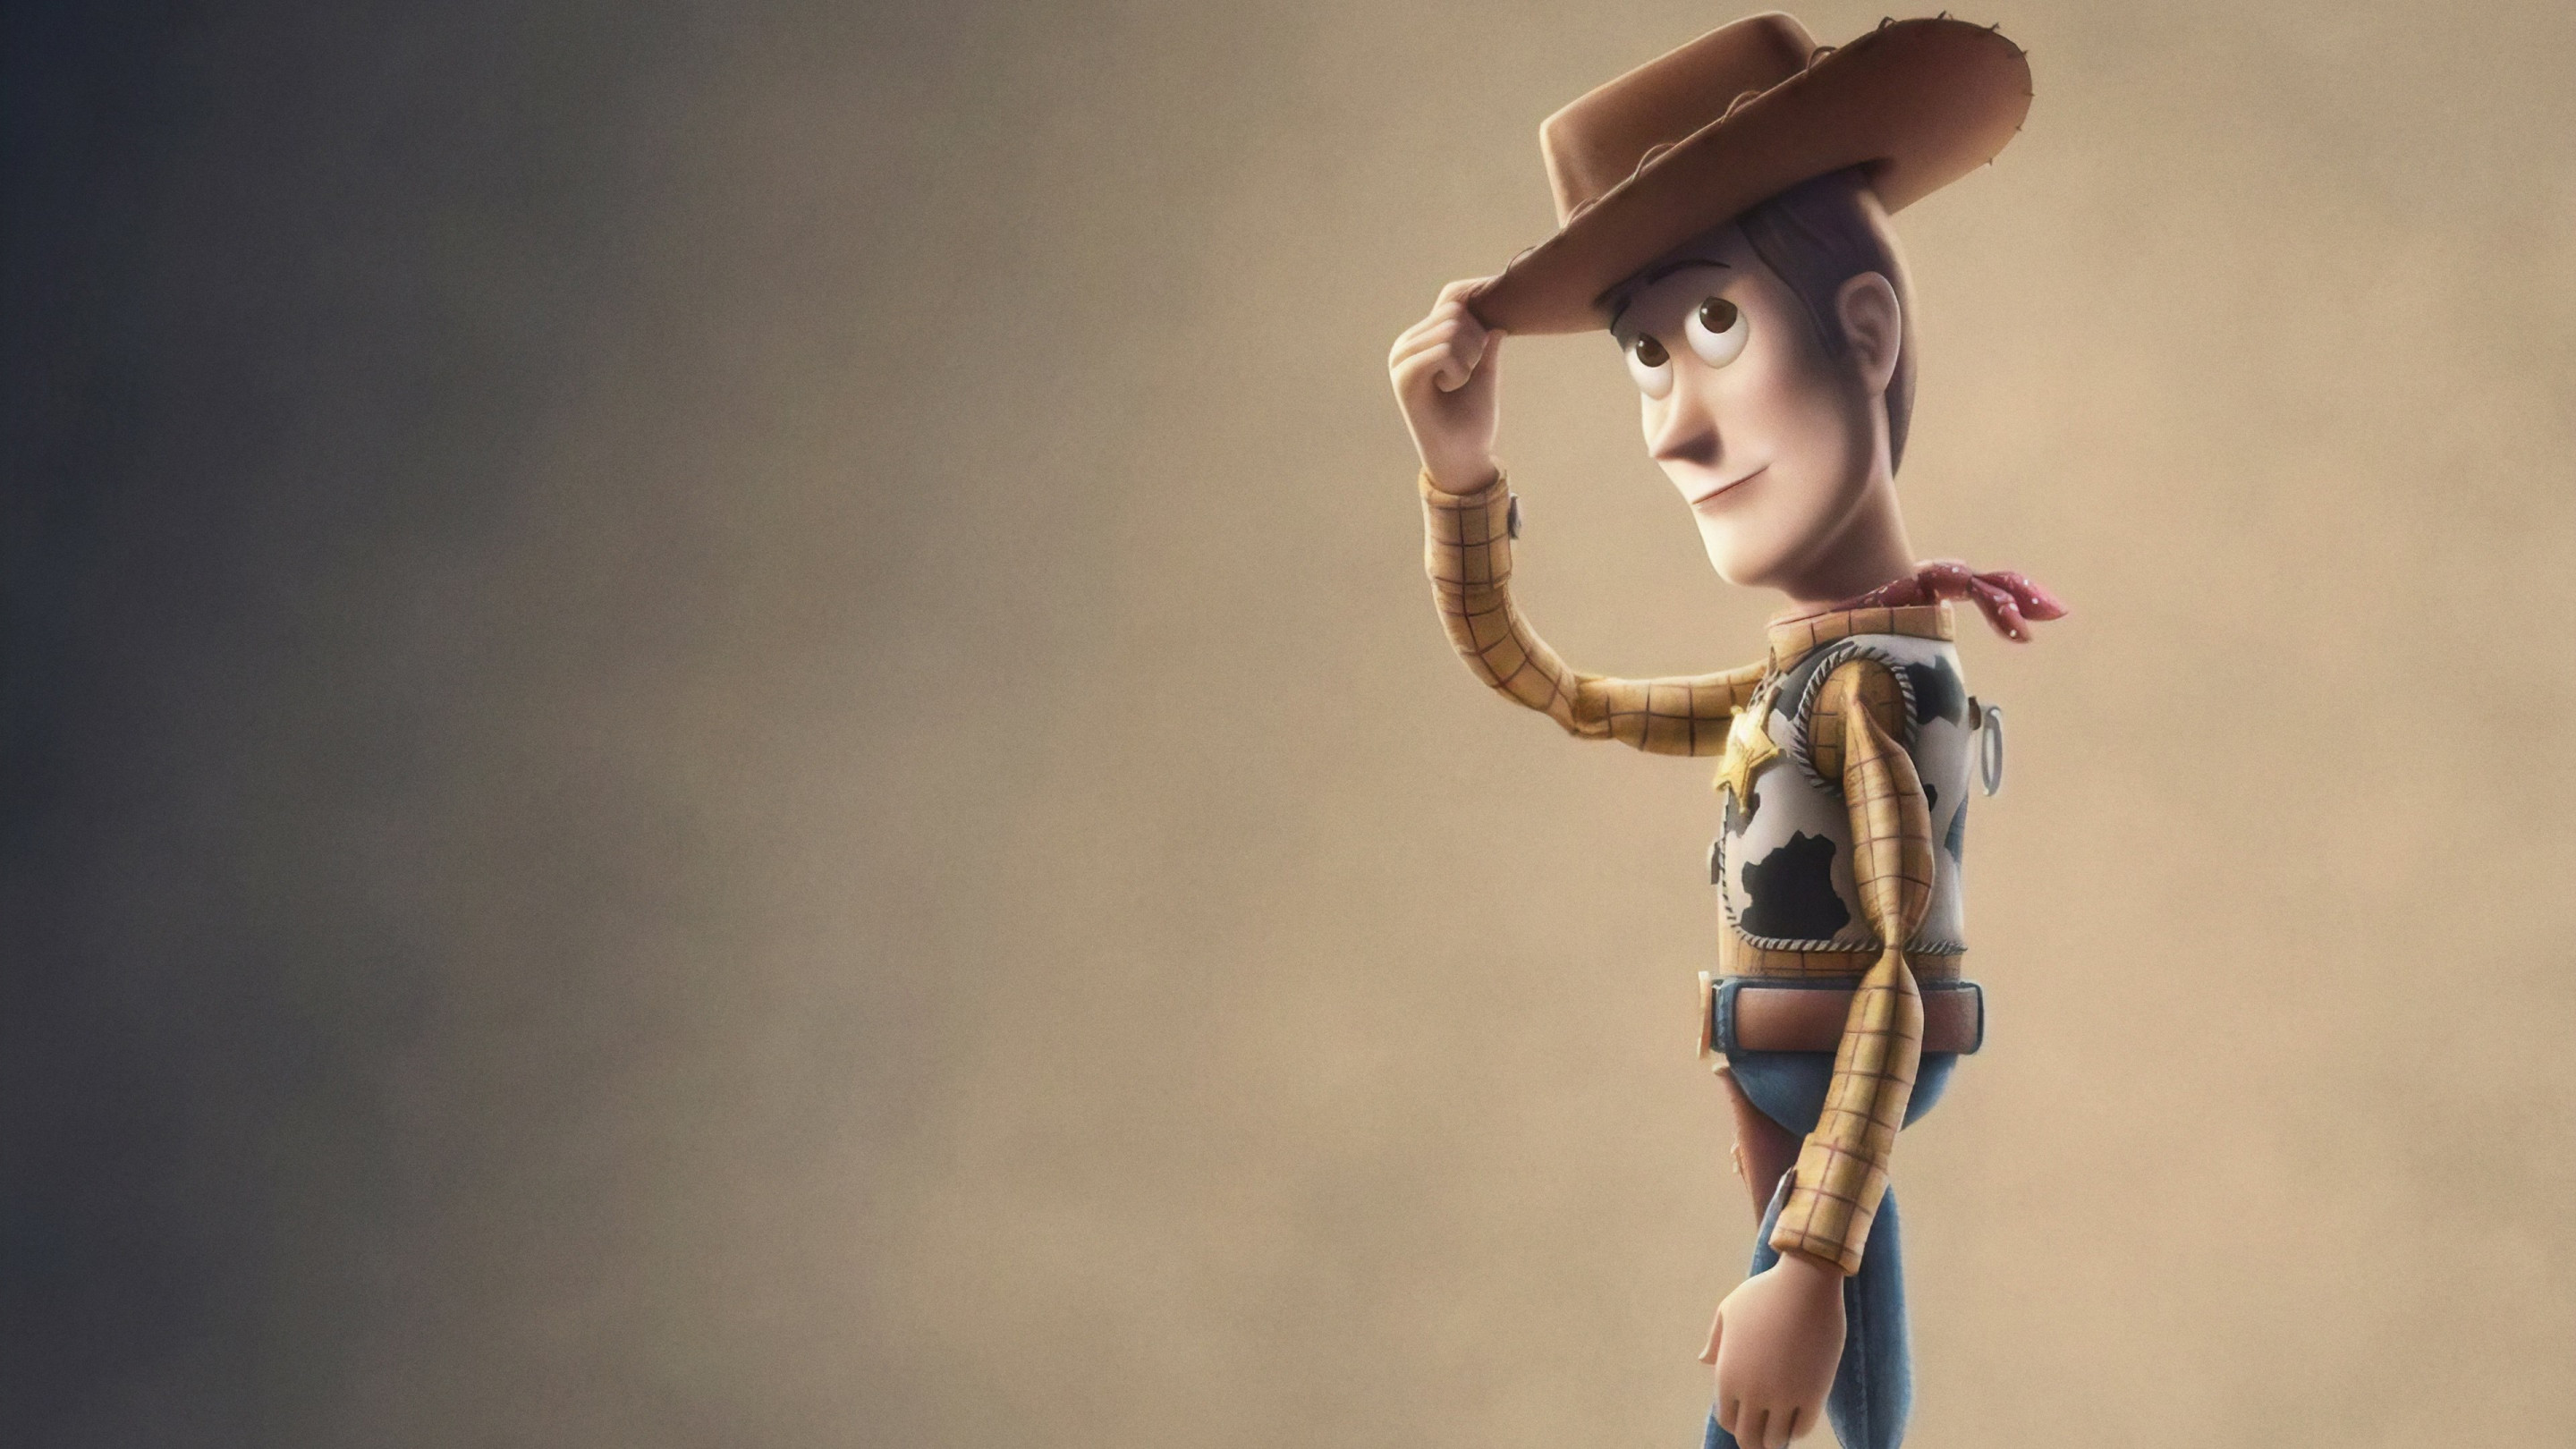 Toy Story 4 | 2880x1620 wallpaper